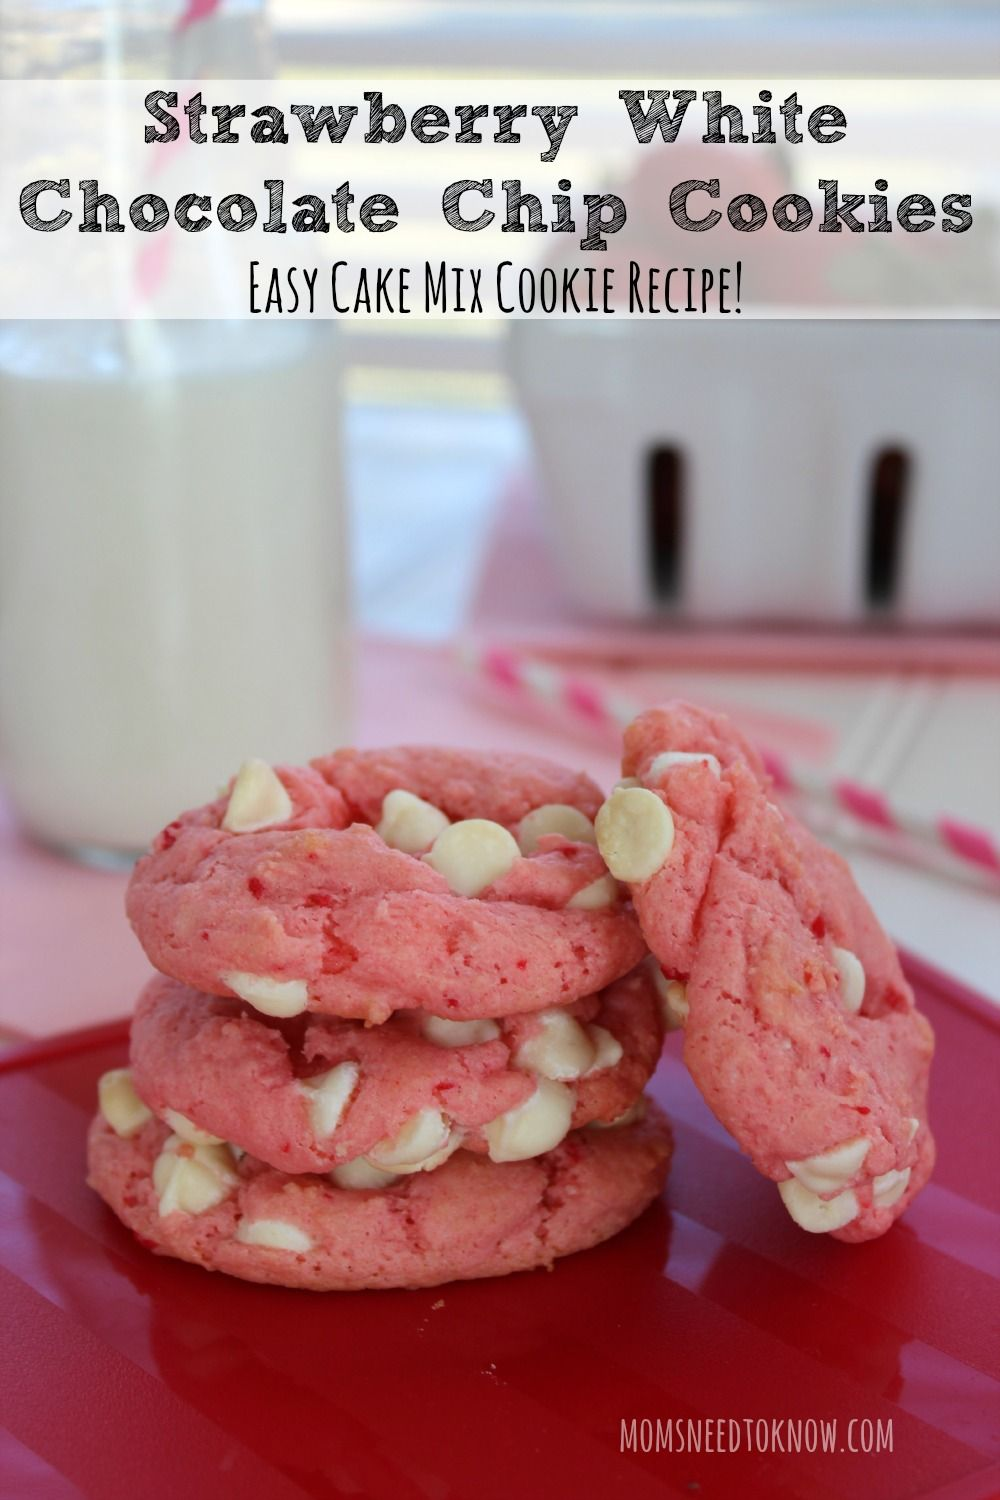 Strawberry Chocolate Chip Cookies From Cake Mix